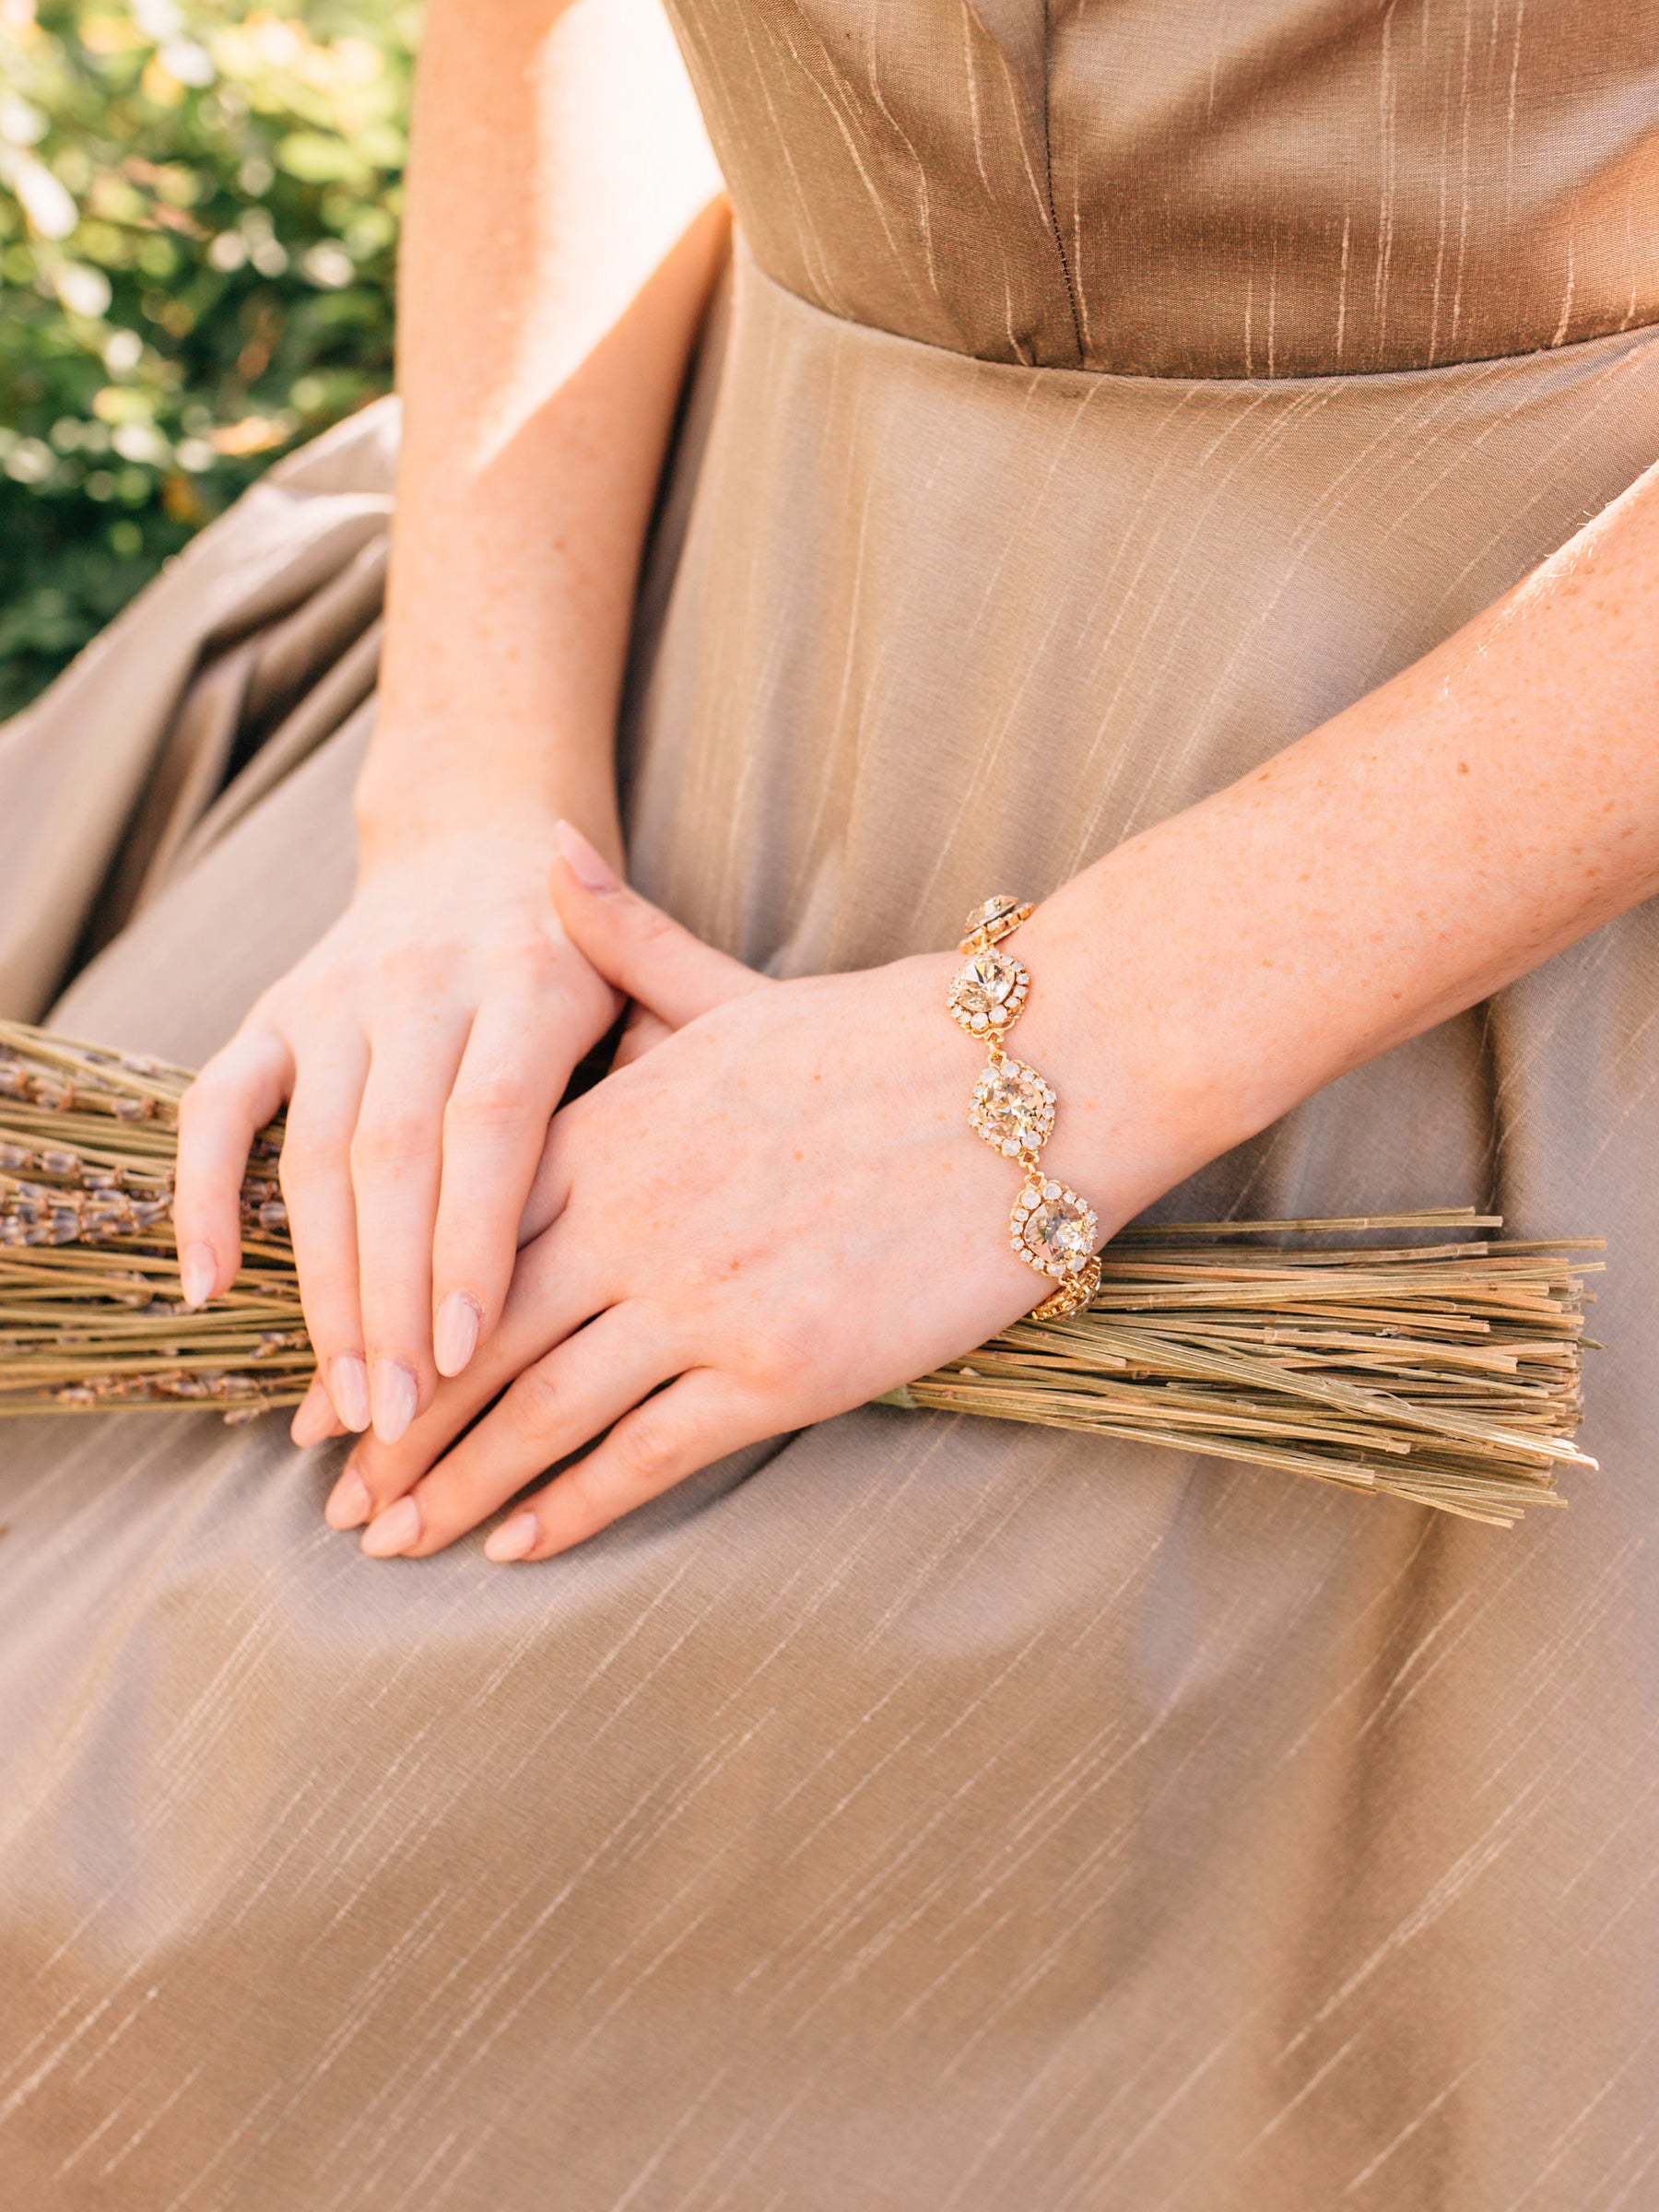 Rent Bridal Jewelry - Lindsie Gold Bracelet - Happily Ever Borrowed